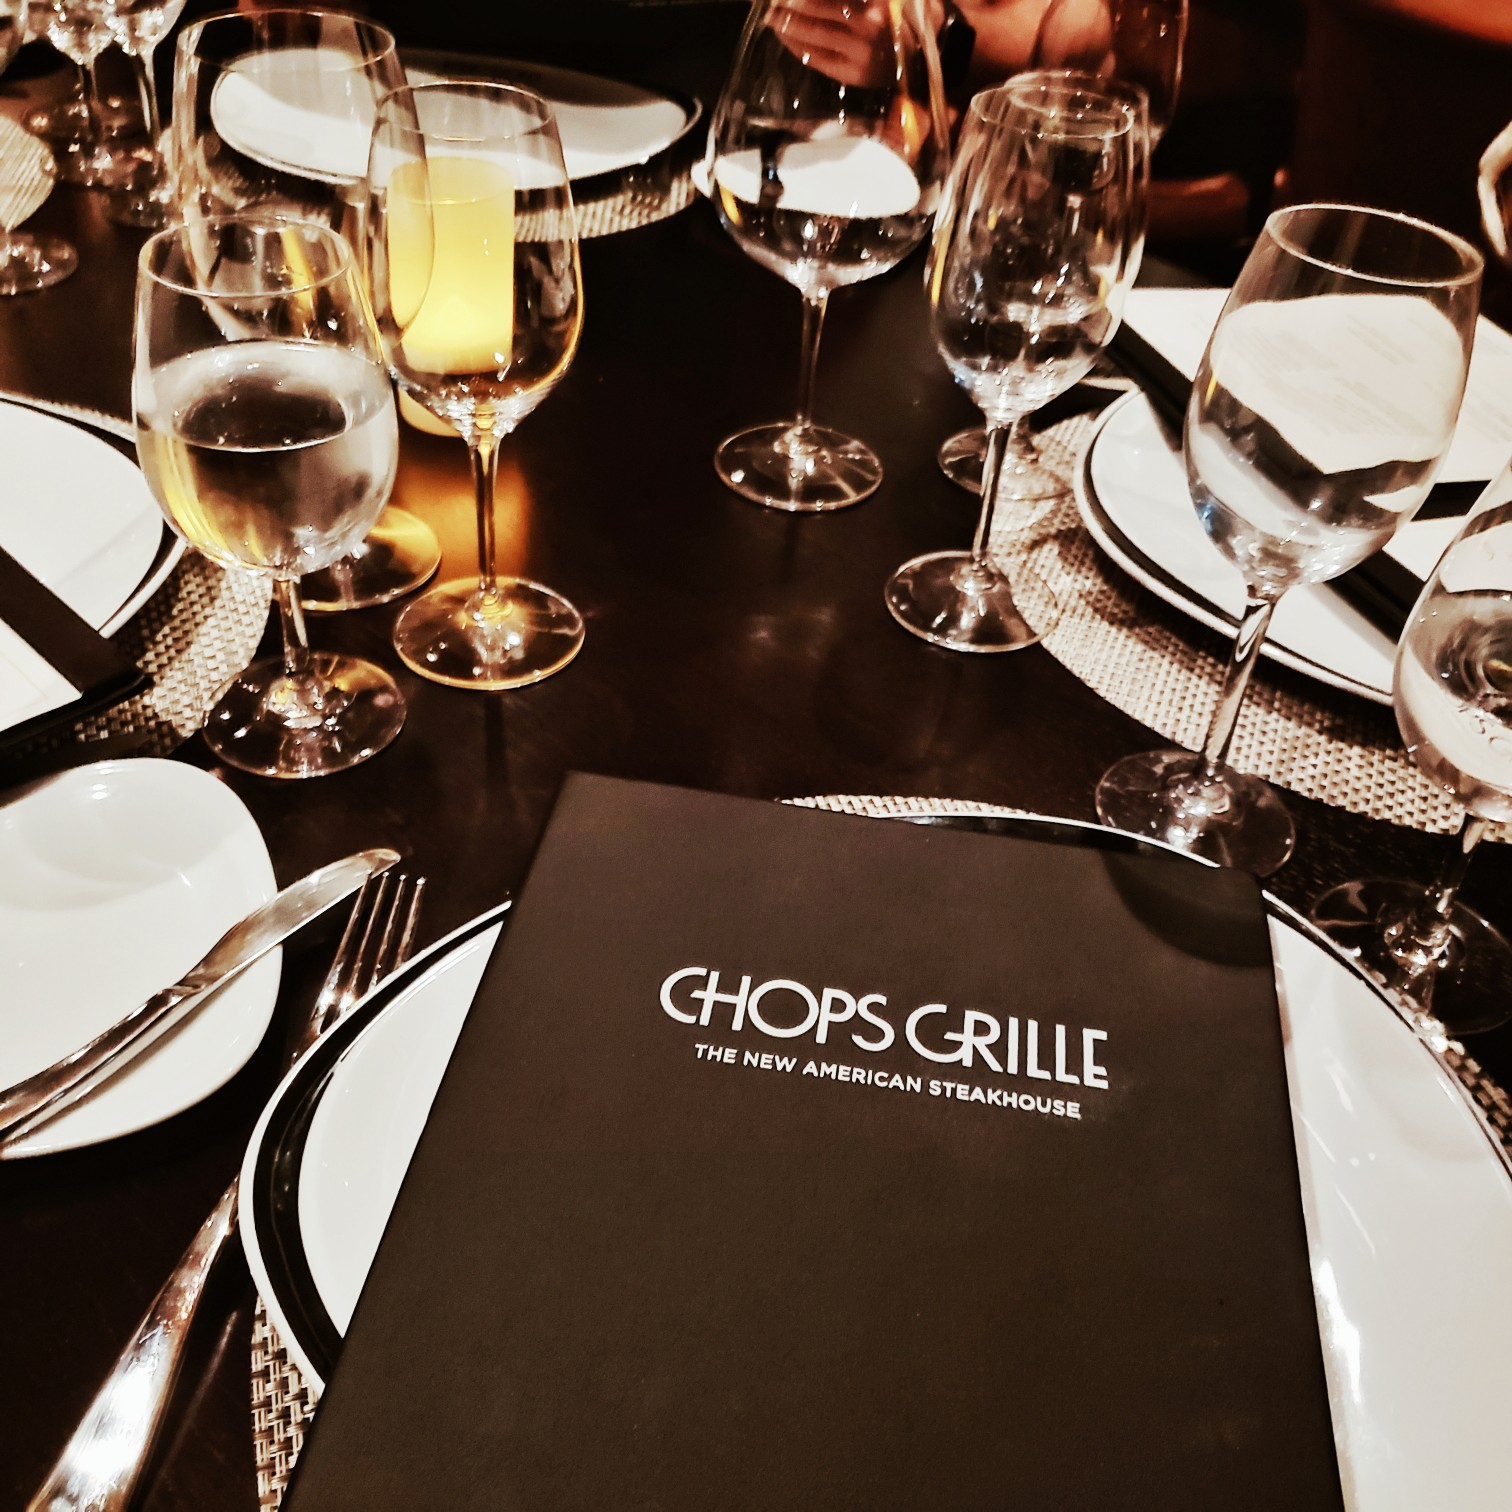 Royal Caribbean Symphony of the Seas Chops Grille